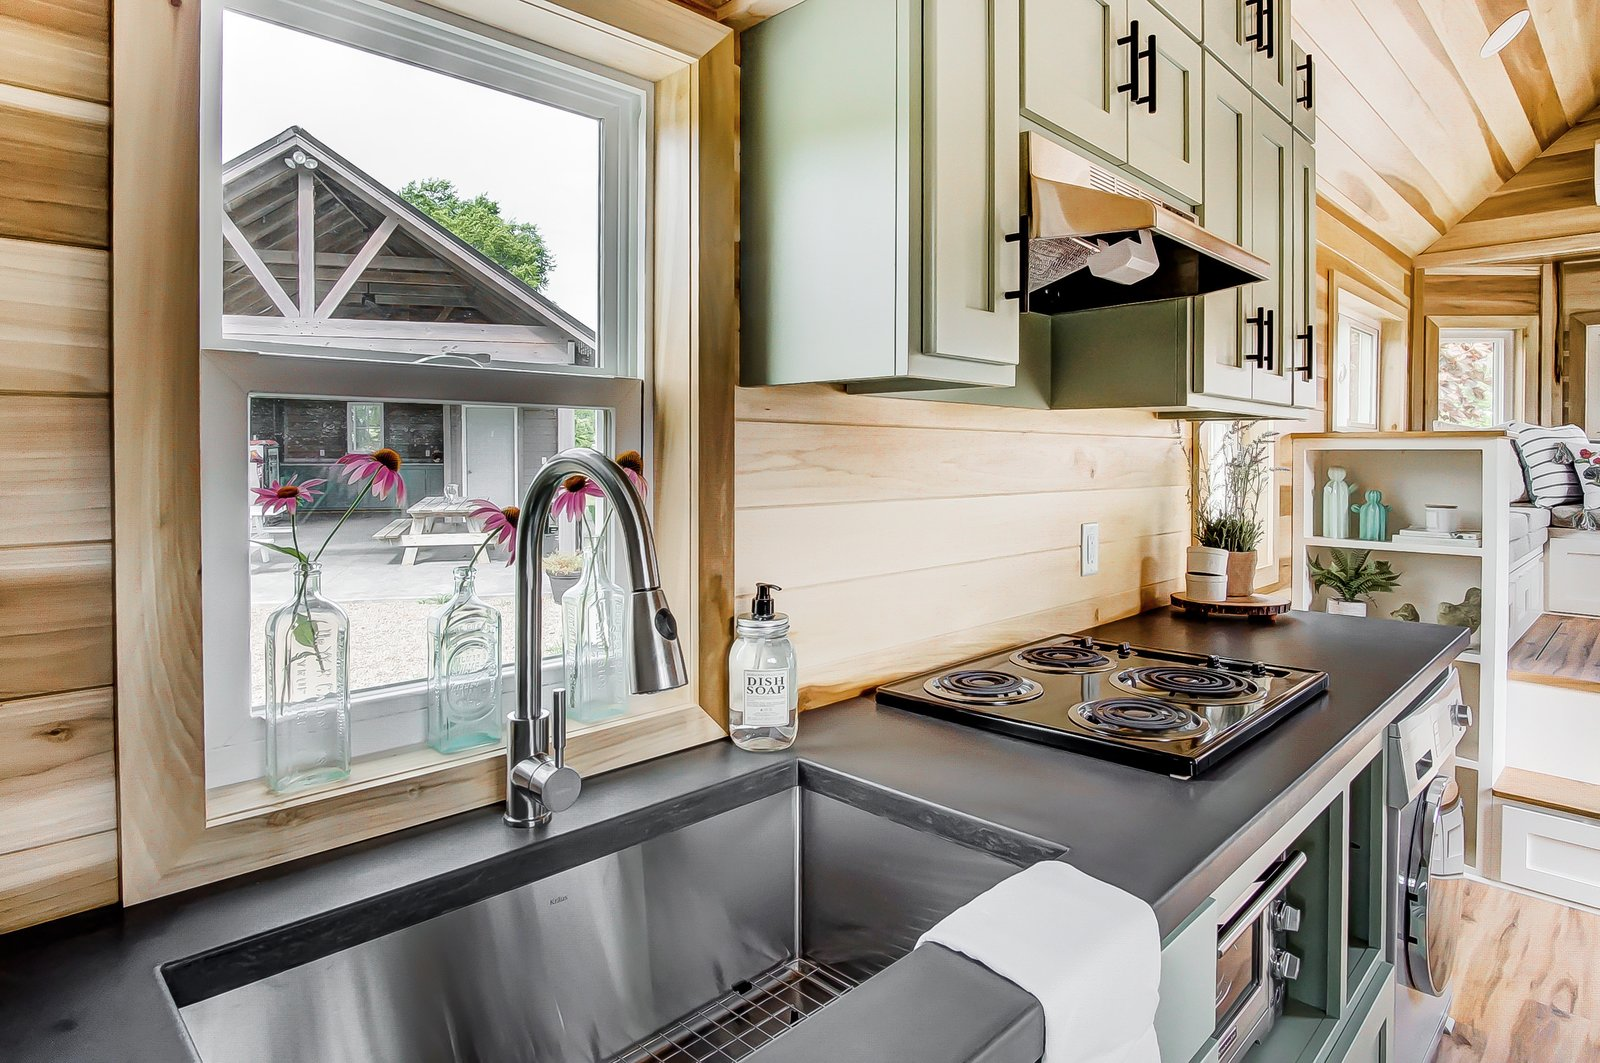 Kitchen, Wood Backsplashe, Concrete Counter, Cooktops, Colorful Cabinet, Range Hood, Medium Hardwood Floor, and Undermount Sink Concrete countertops and poplar wood finishings give the interiors a warm, cozy feel.    Photo 5 of 11 in This 270-Square-Foot Tiny Home Is Now Up For Grabs at $89K